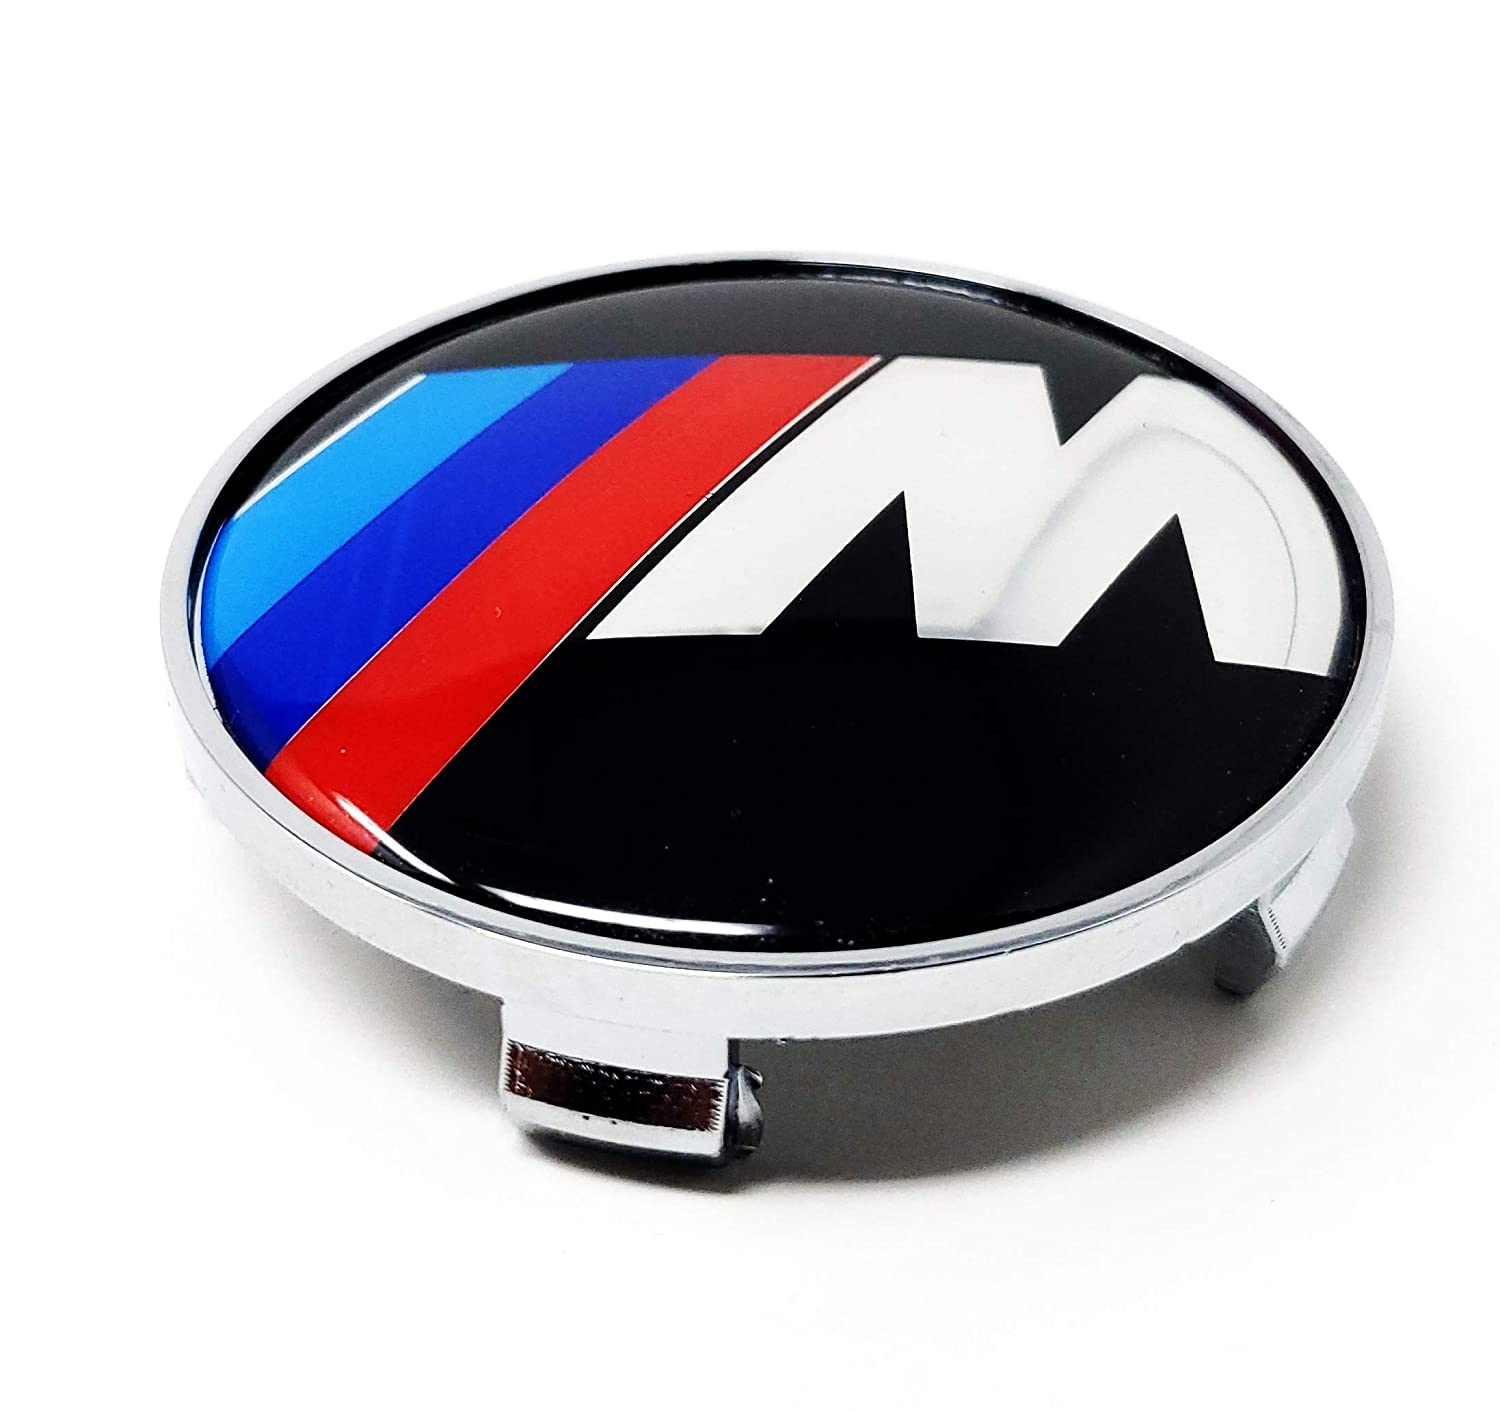 DMD 68.5MM Black Red M Center Cap 4 Pieces Set Wheel Rim Mags Tire Hub Hubcap Full Piece ABS Cover Universal Tuning Mod Logo Badge Emblem Fit for 3 4 5 6 7 Series M X etc